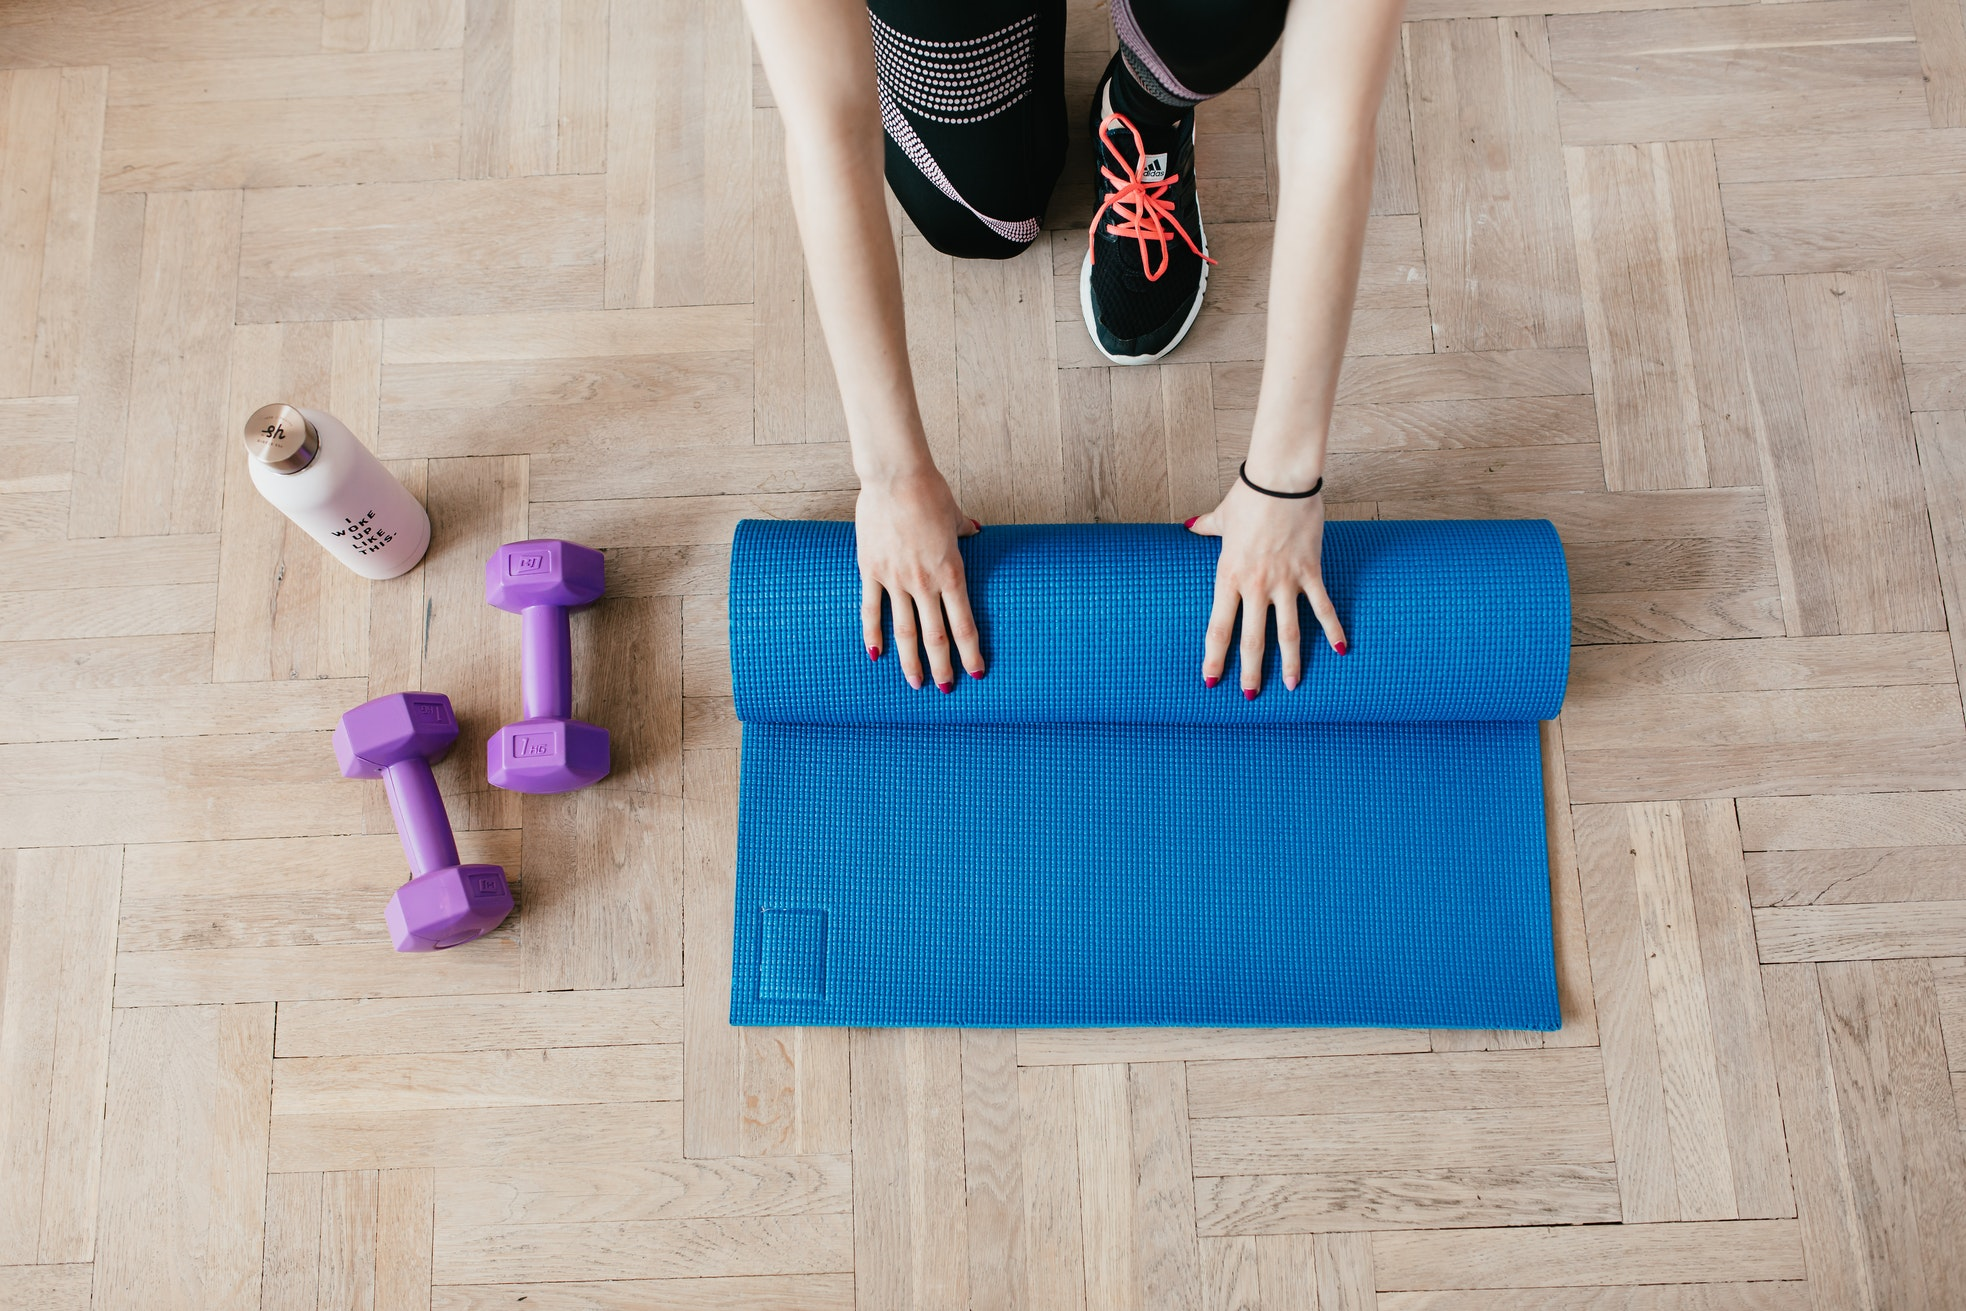 Home Workouts: Fun and Effective